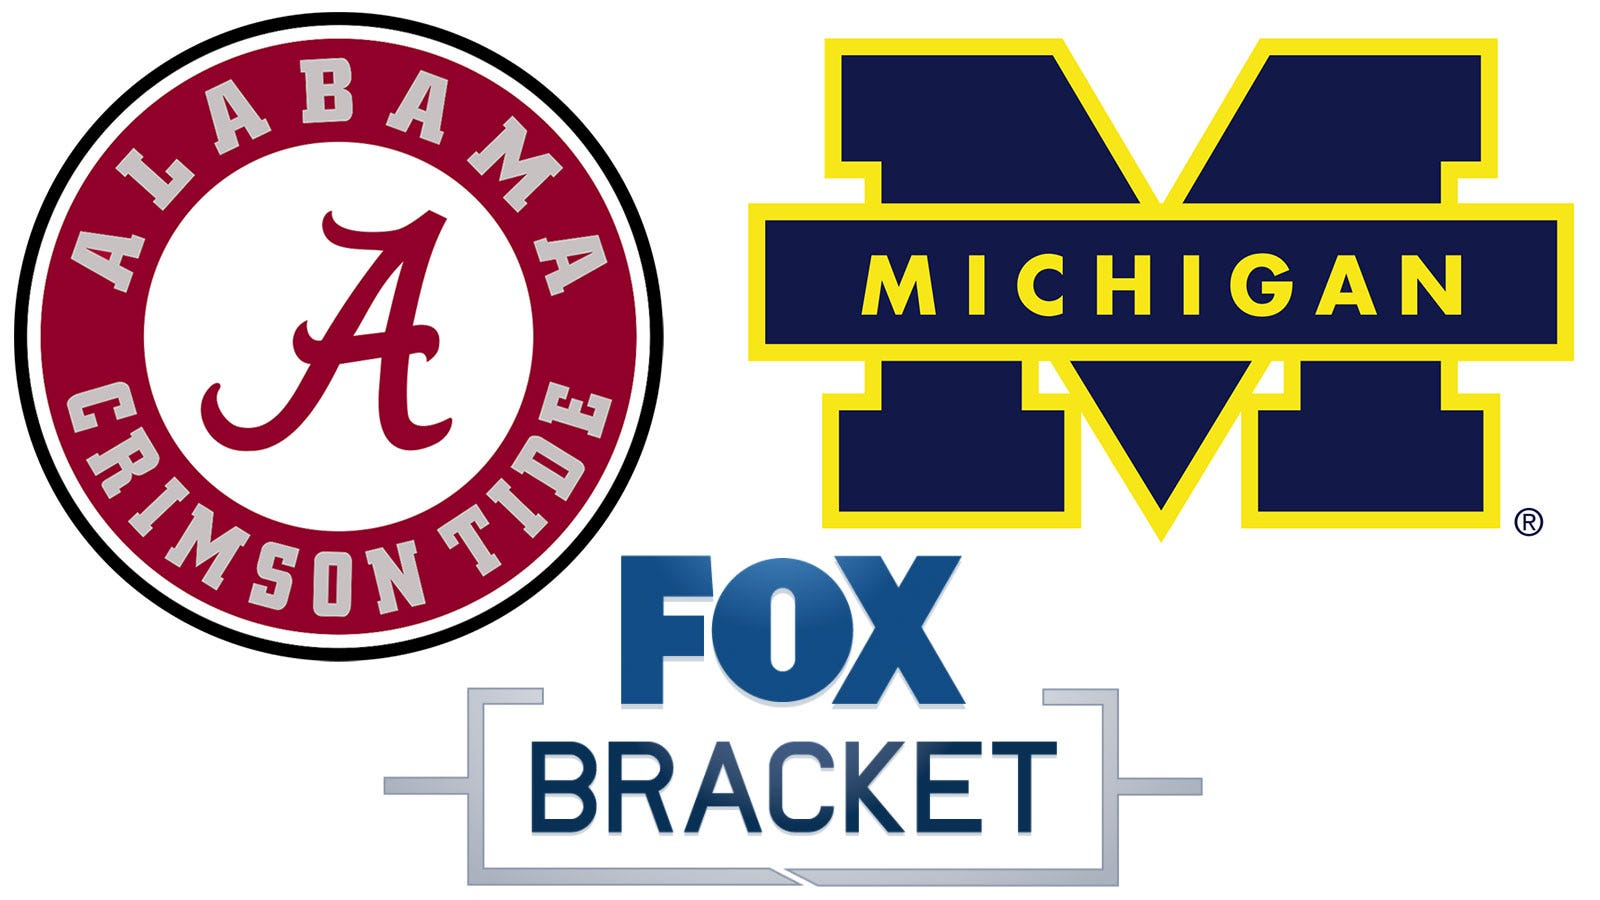 The 2016 8-team College Football Playoff - Bracket Image